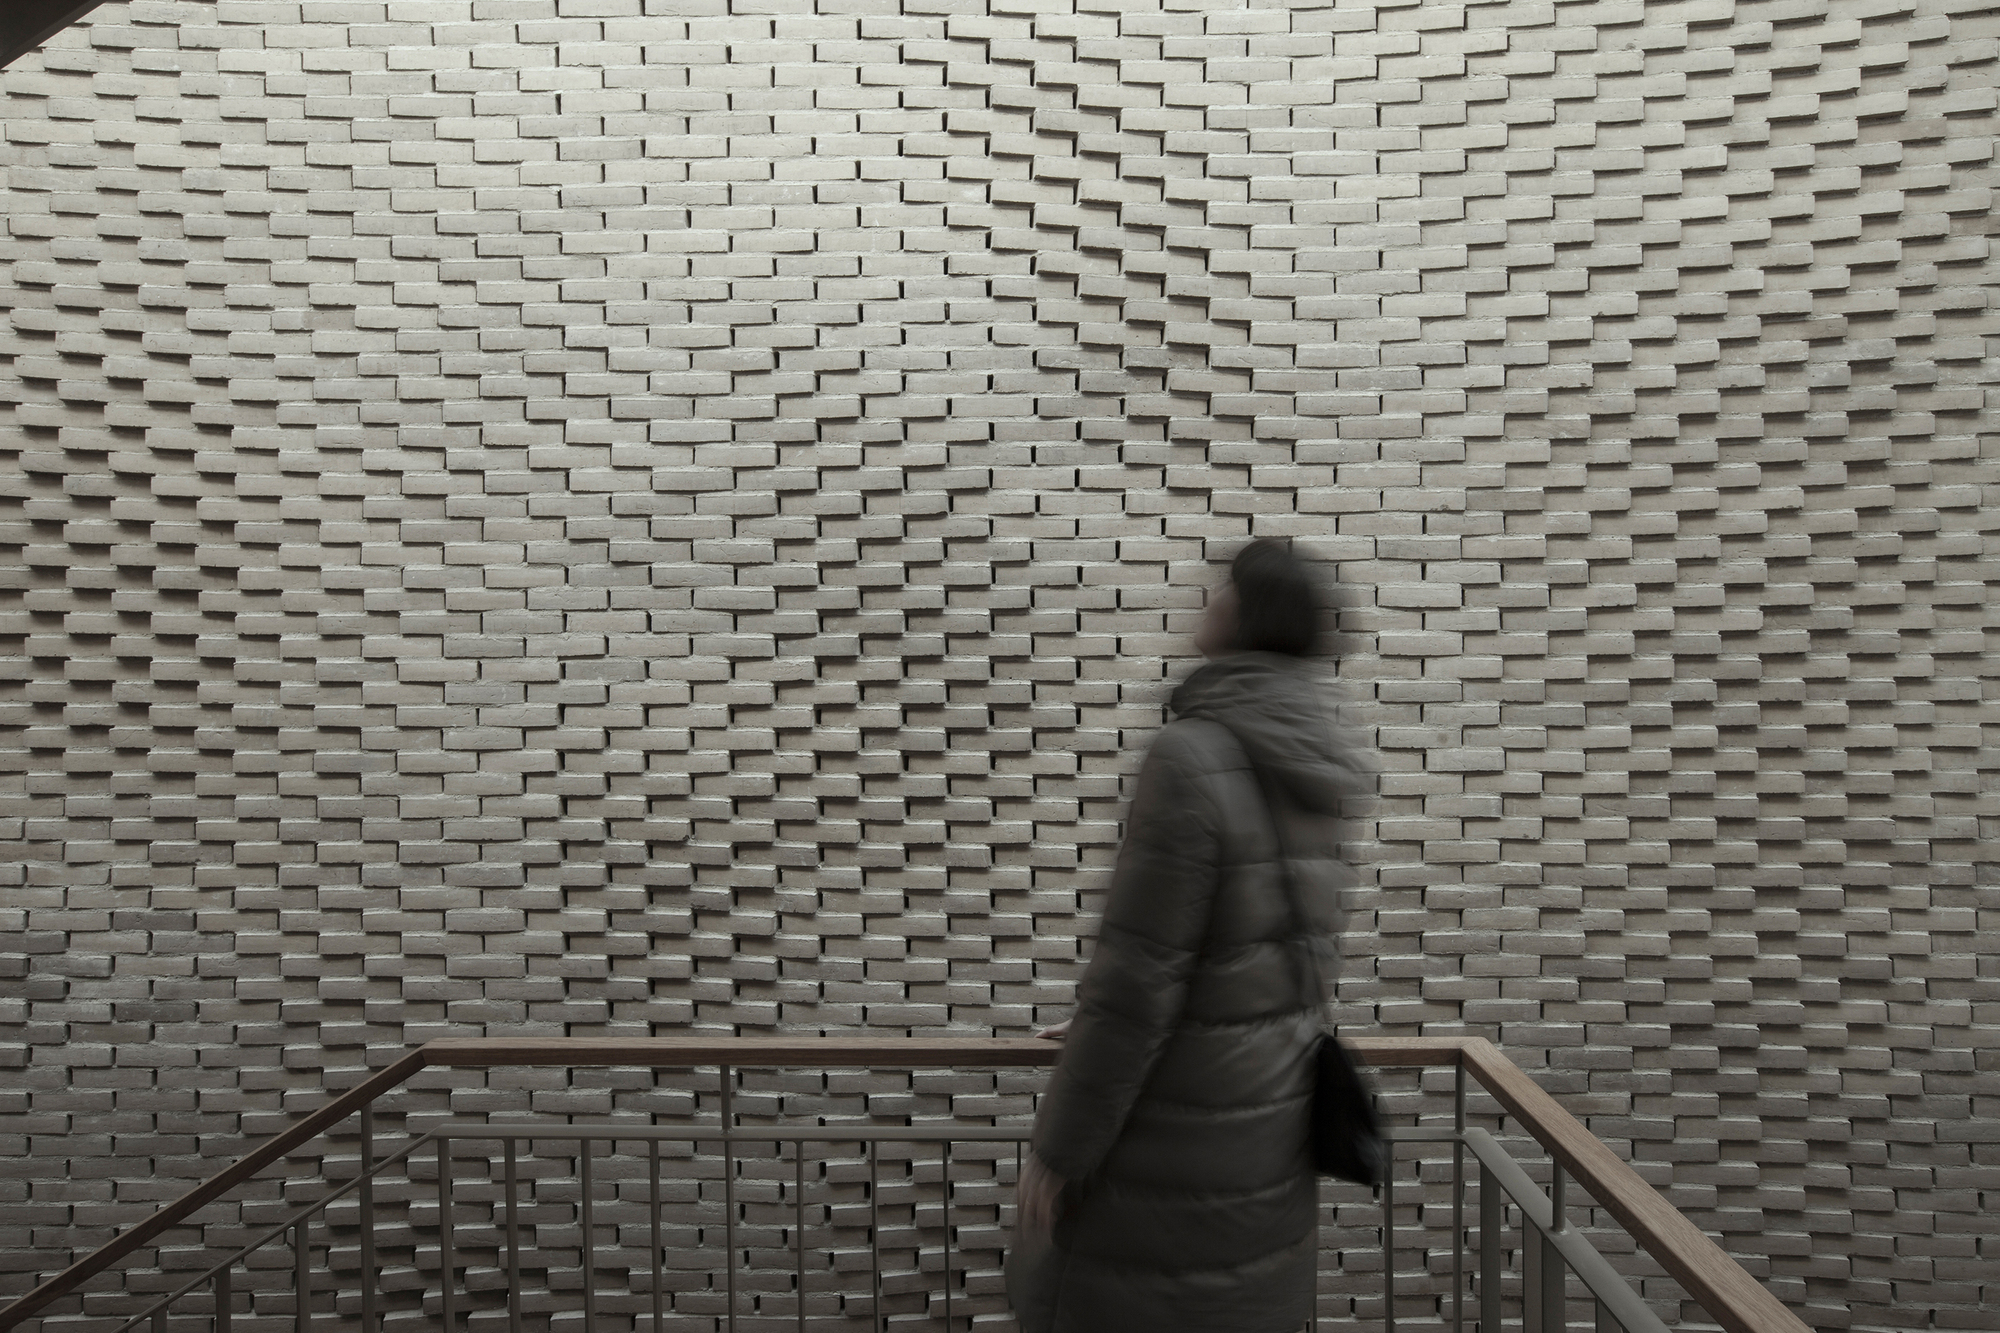 this handlaid brick feature wall was inspired by soundwaves in water